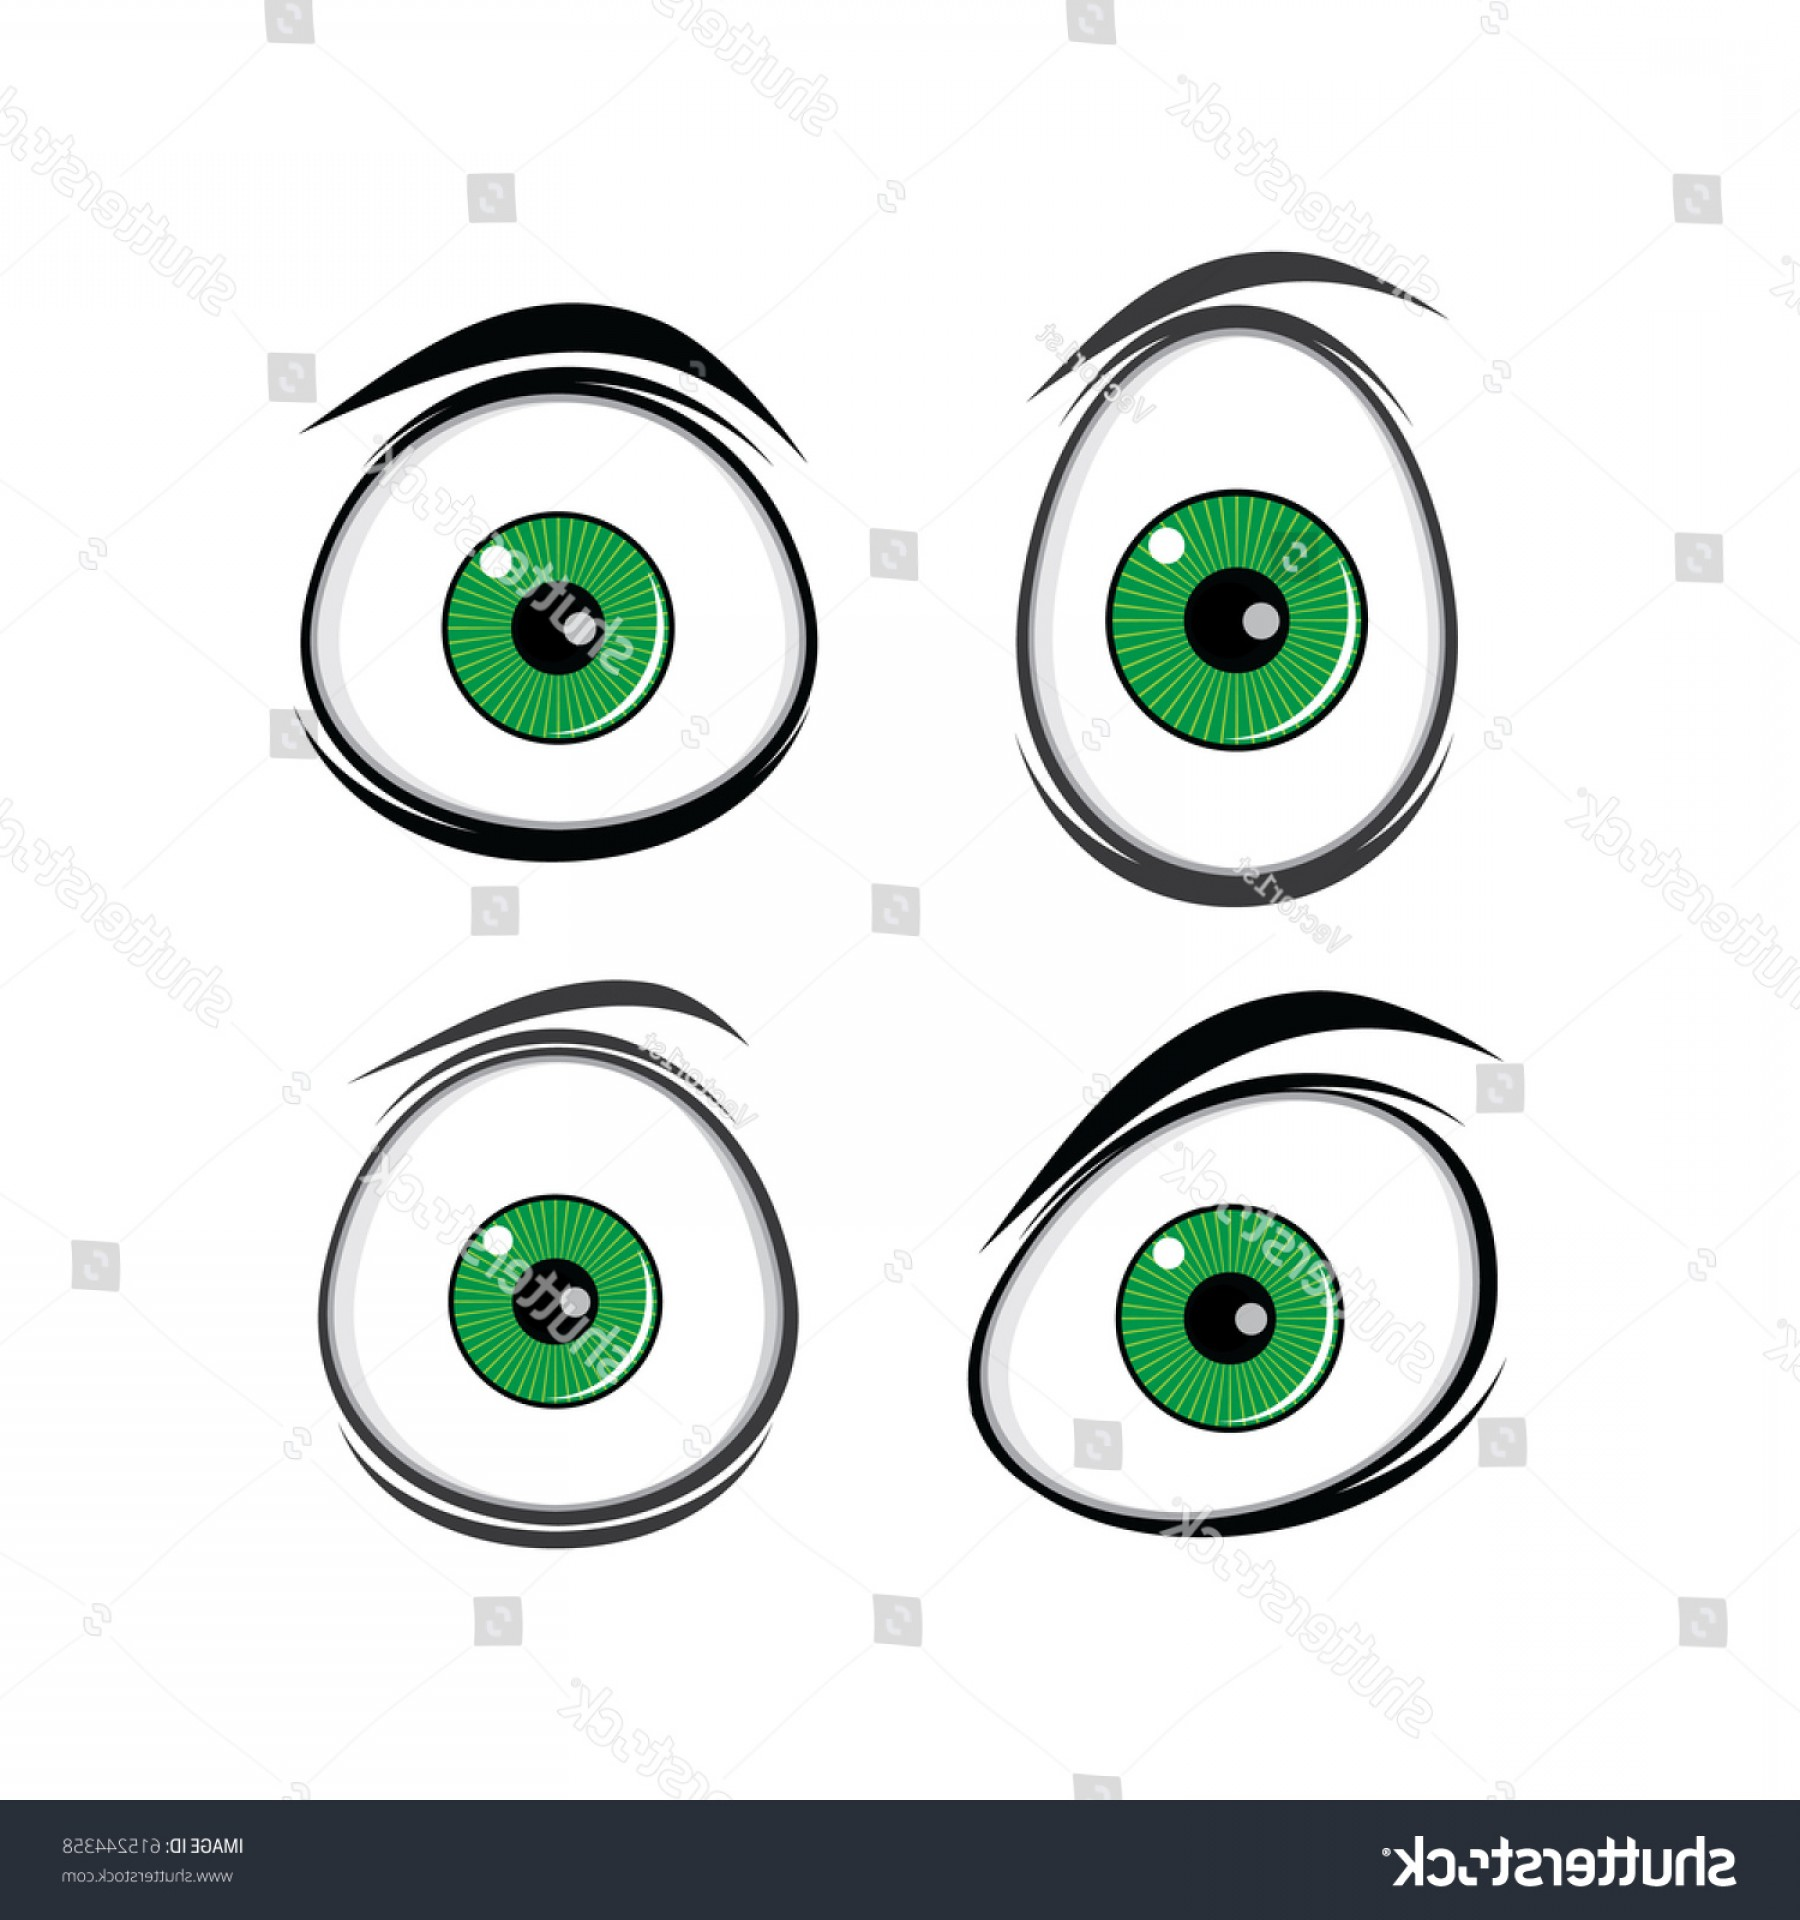 Green Cartoon Eyes Vector Png: Cartoon Funny Green Eyes Comics Design